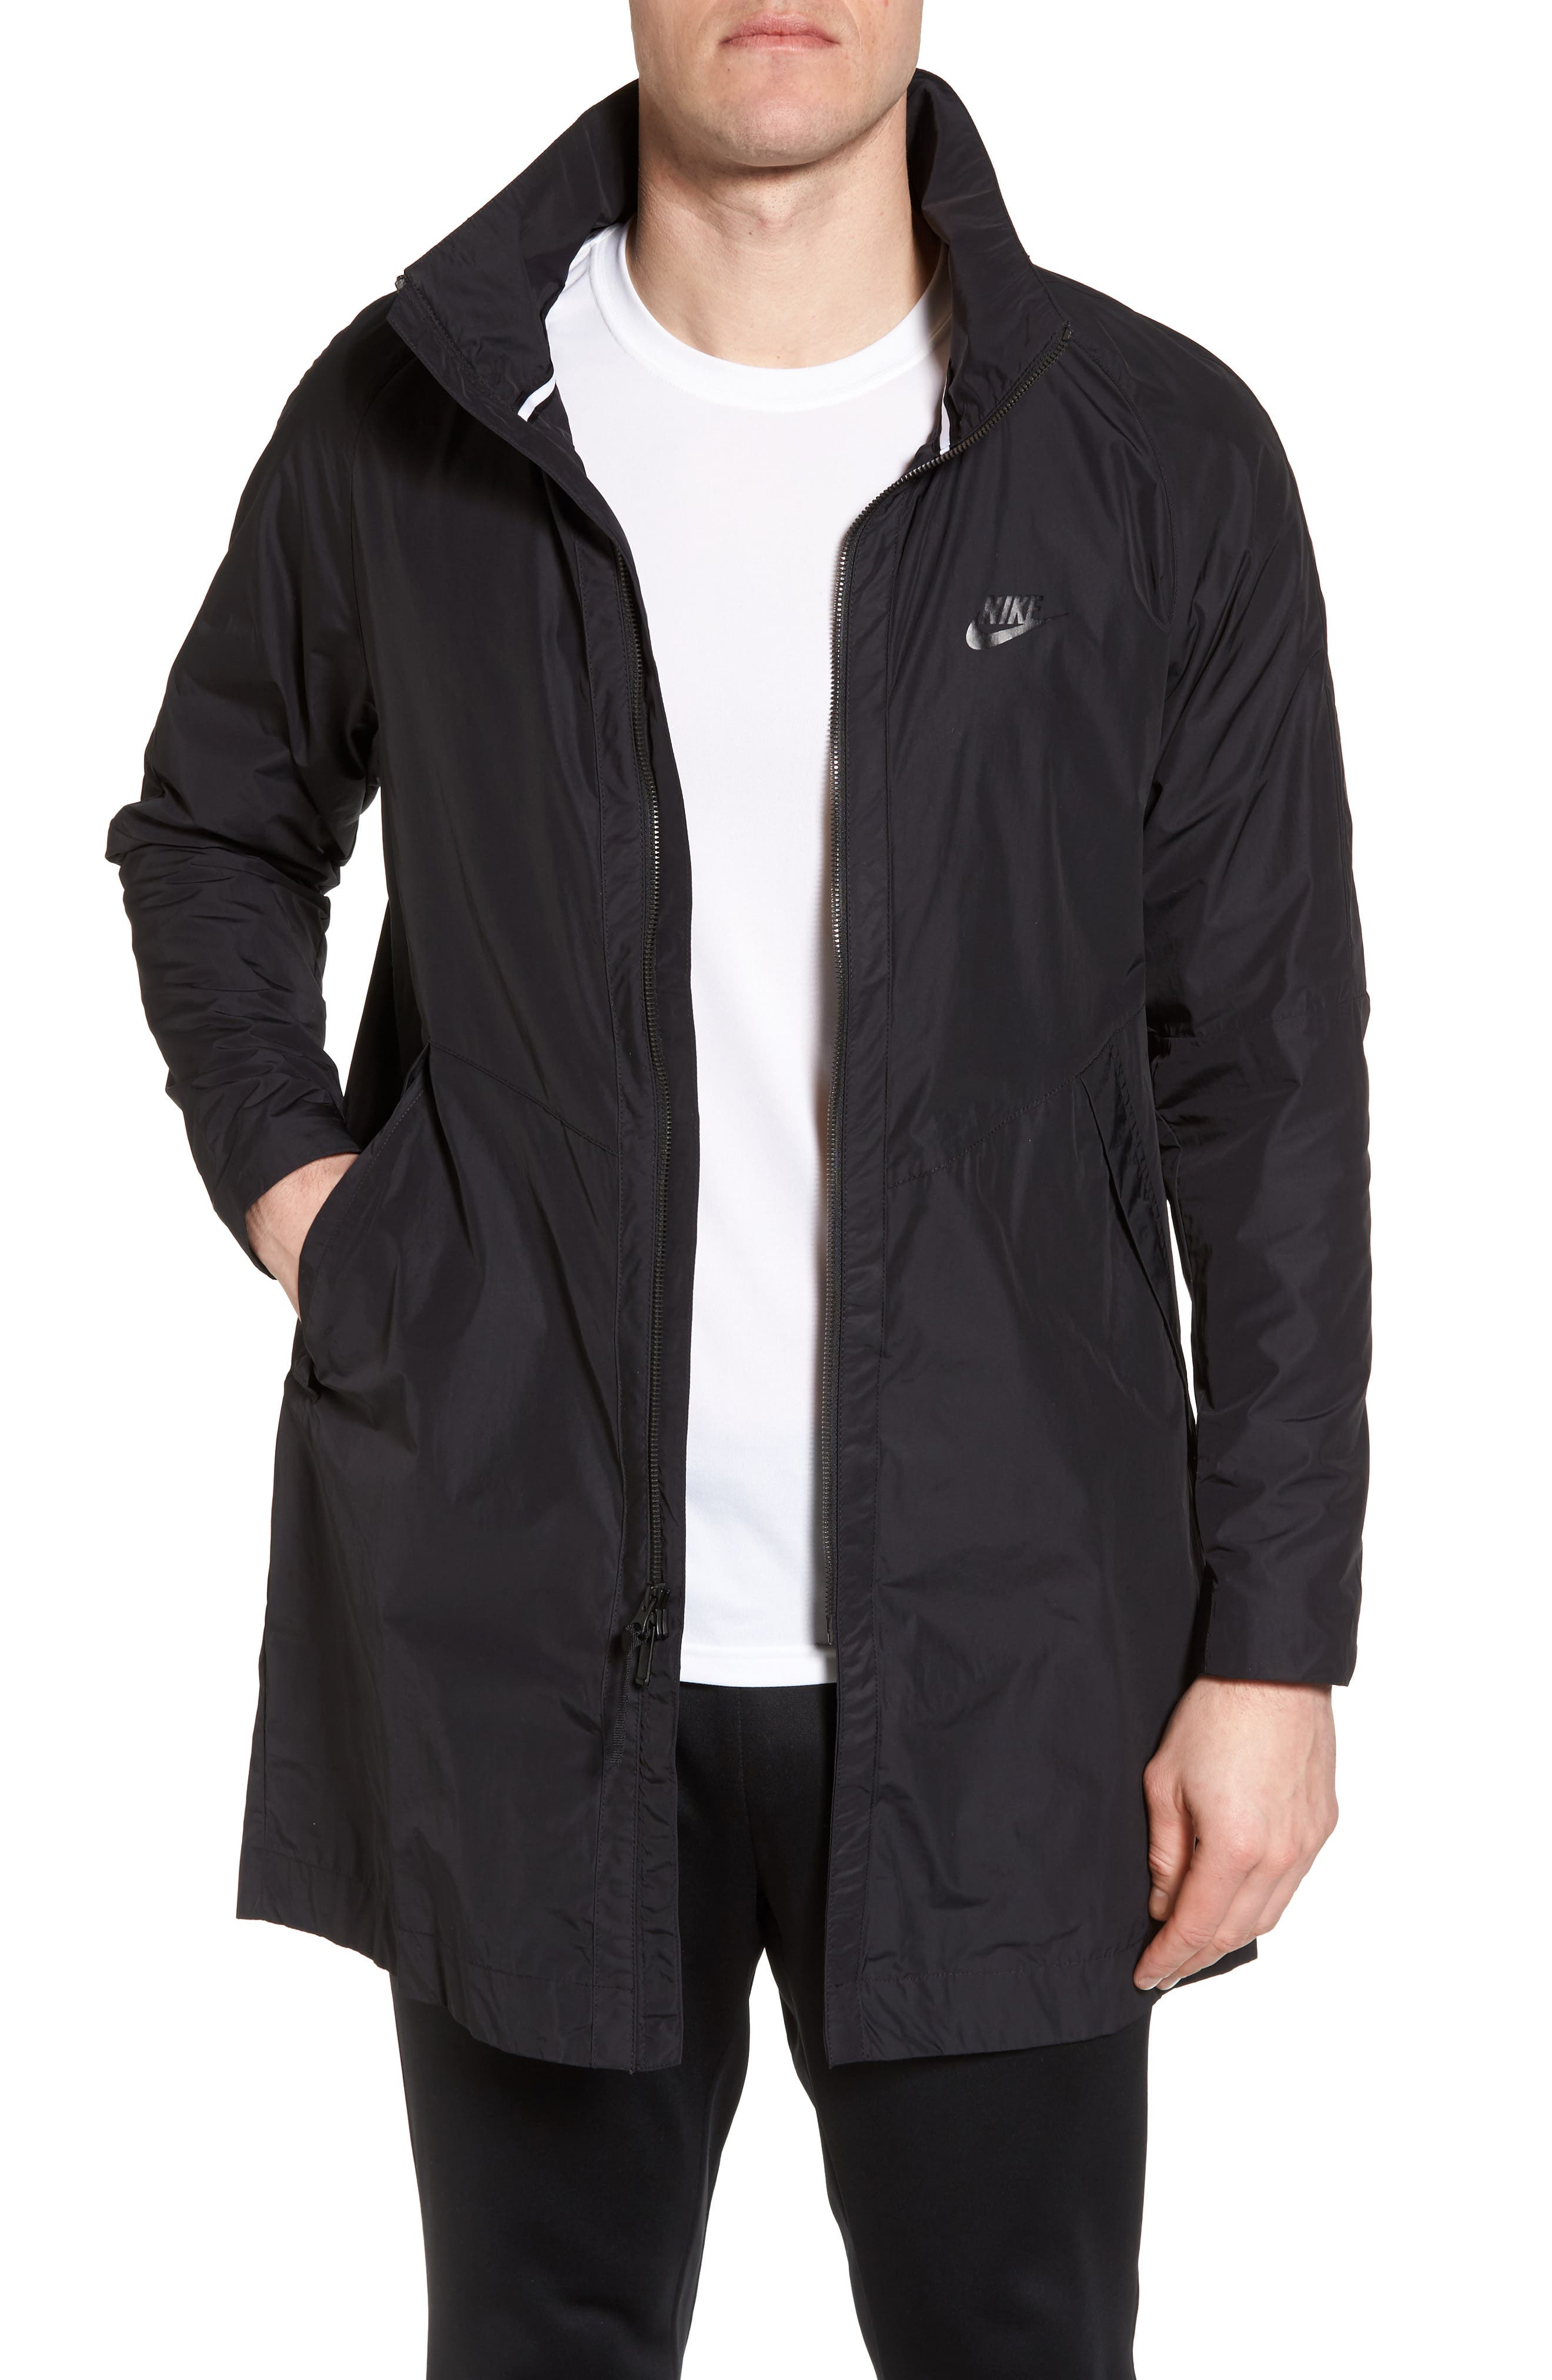 NSW Franchise Jacket,                             Main thumbnail 1, color,                             010